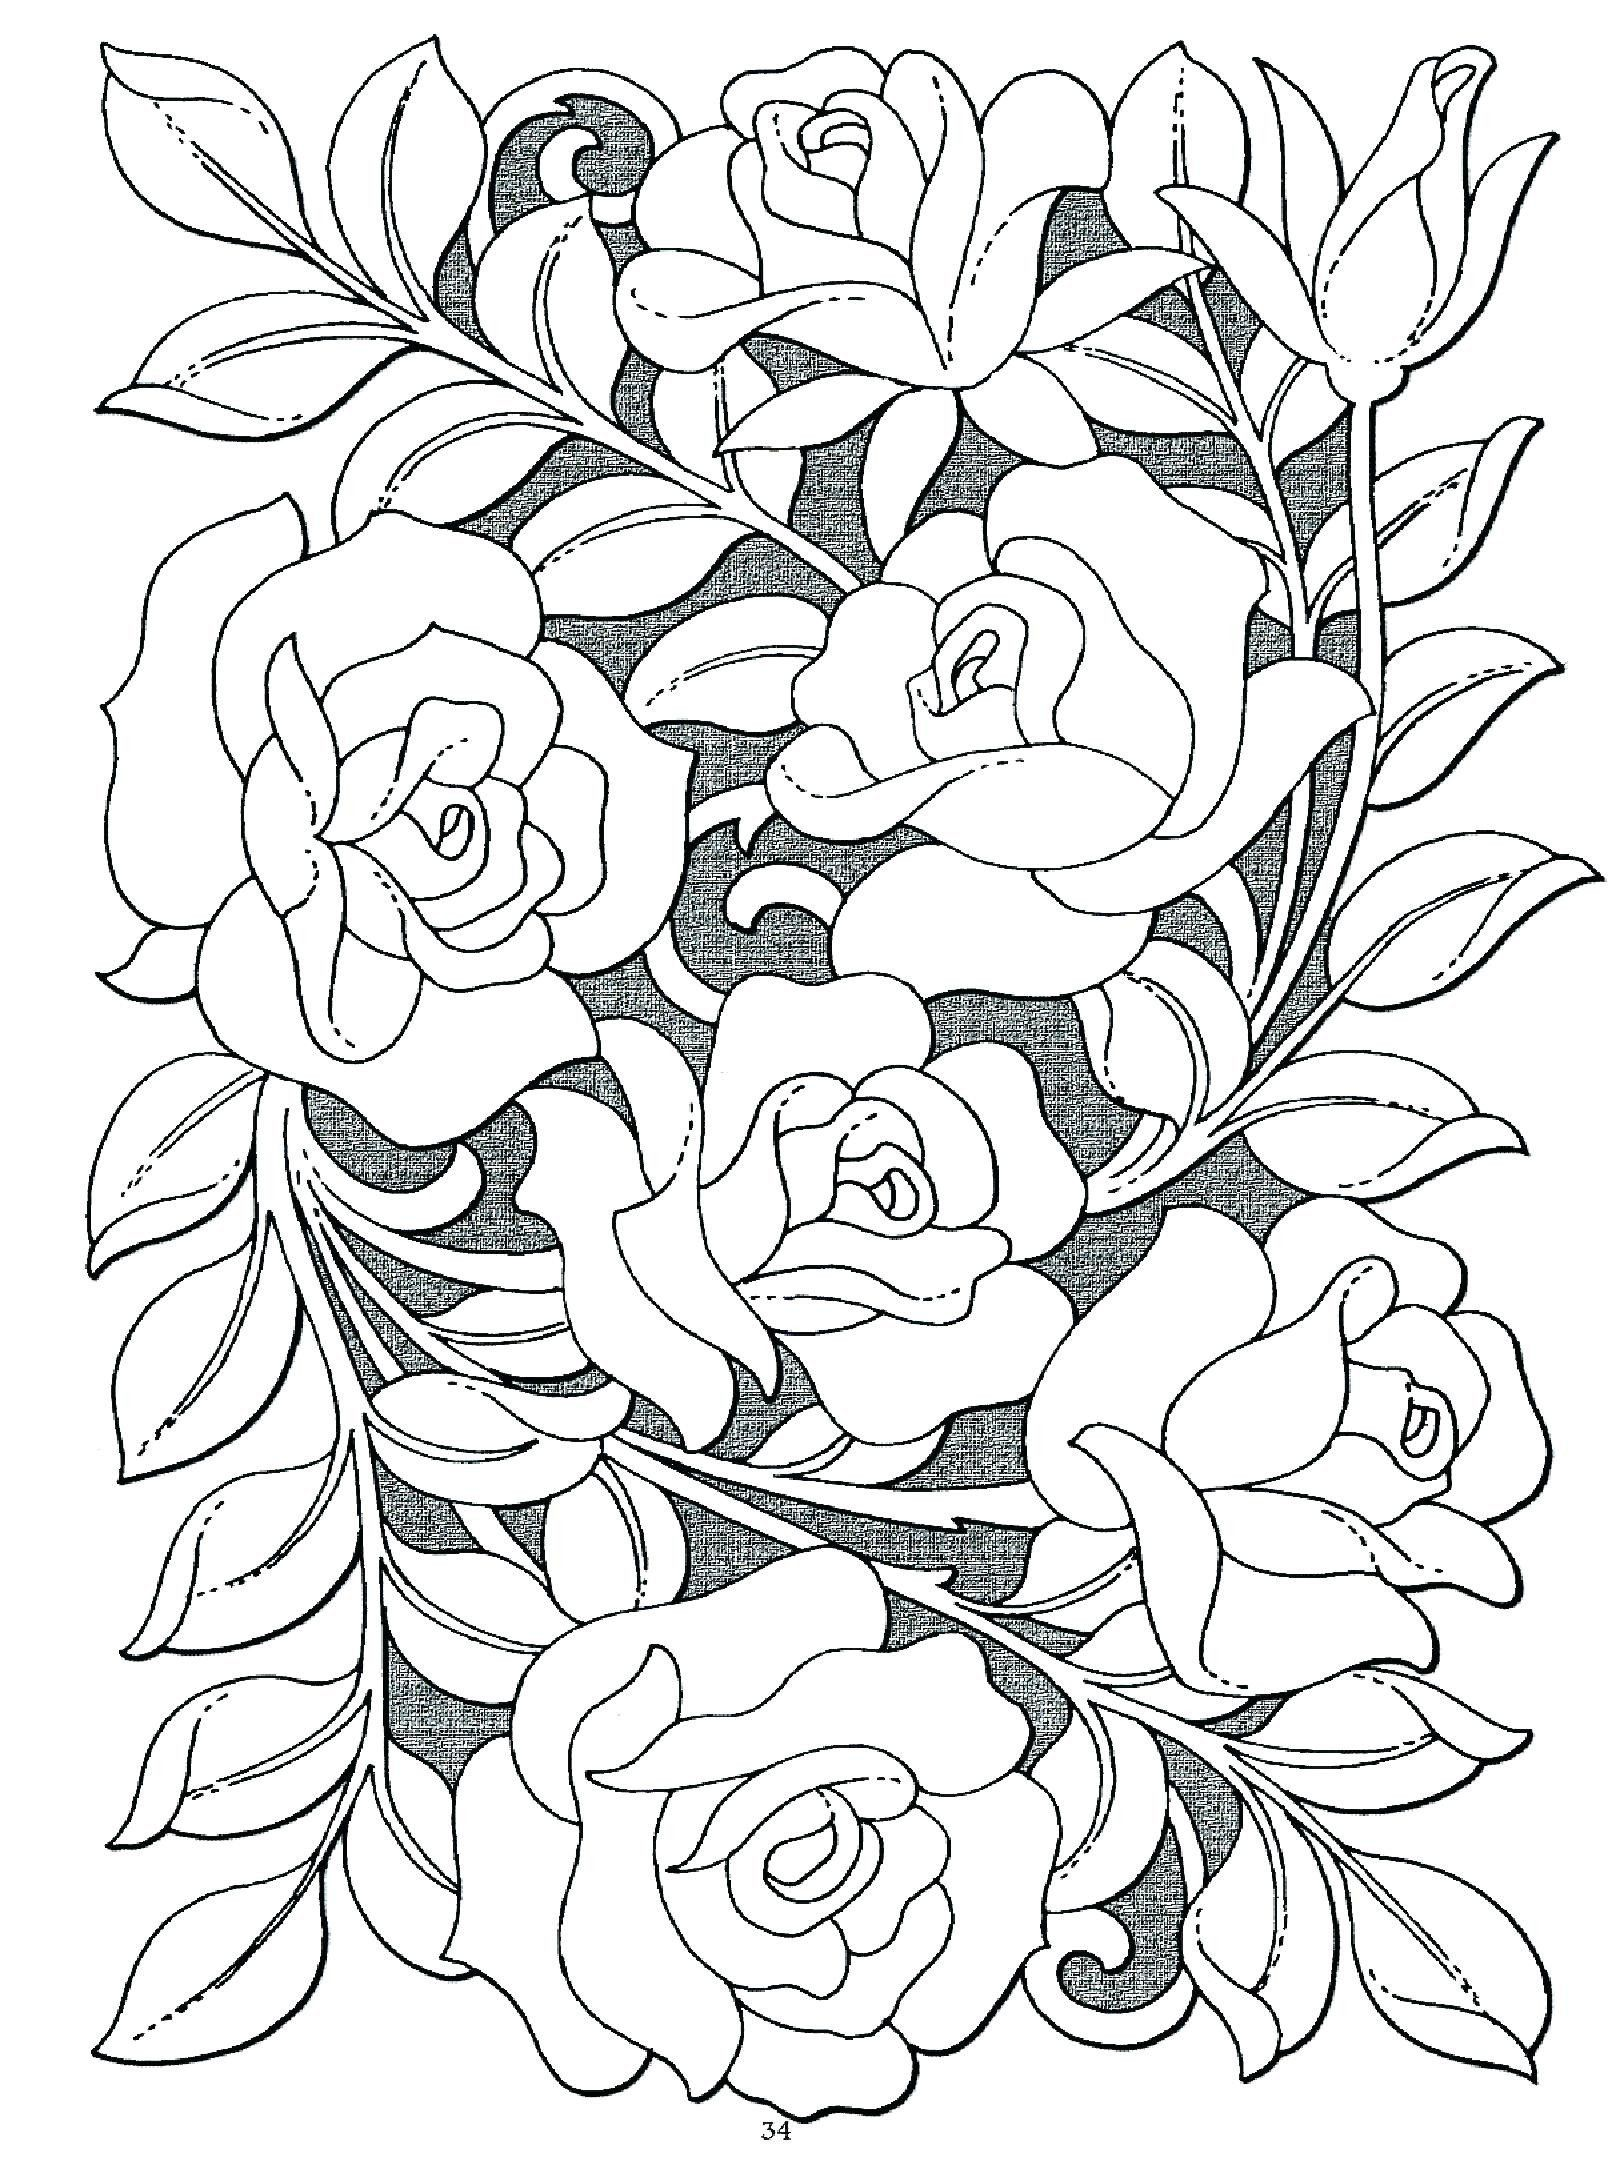 Rose Coloring Pages For Kids Coloring Pages Printable Flower Coloring Sheets Free For In 2020 Rose Coloring Pages Flower Coloring Pages Coloring Pages